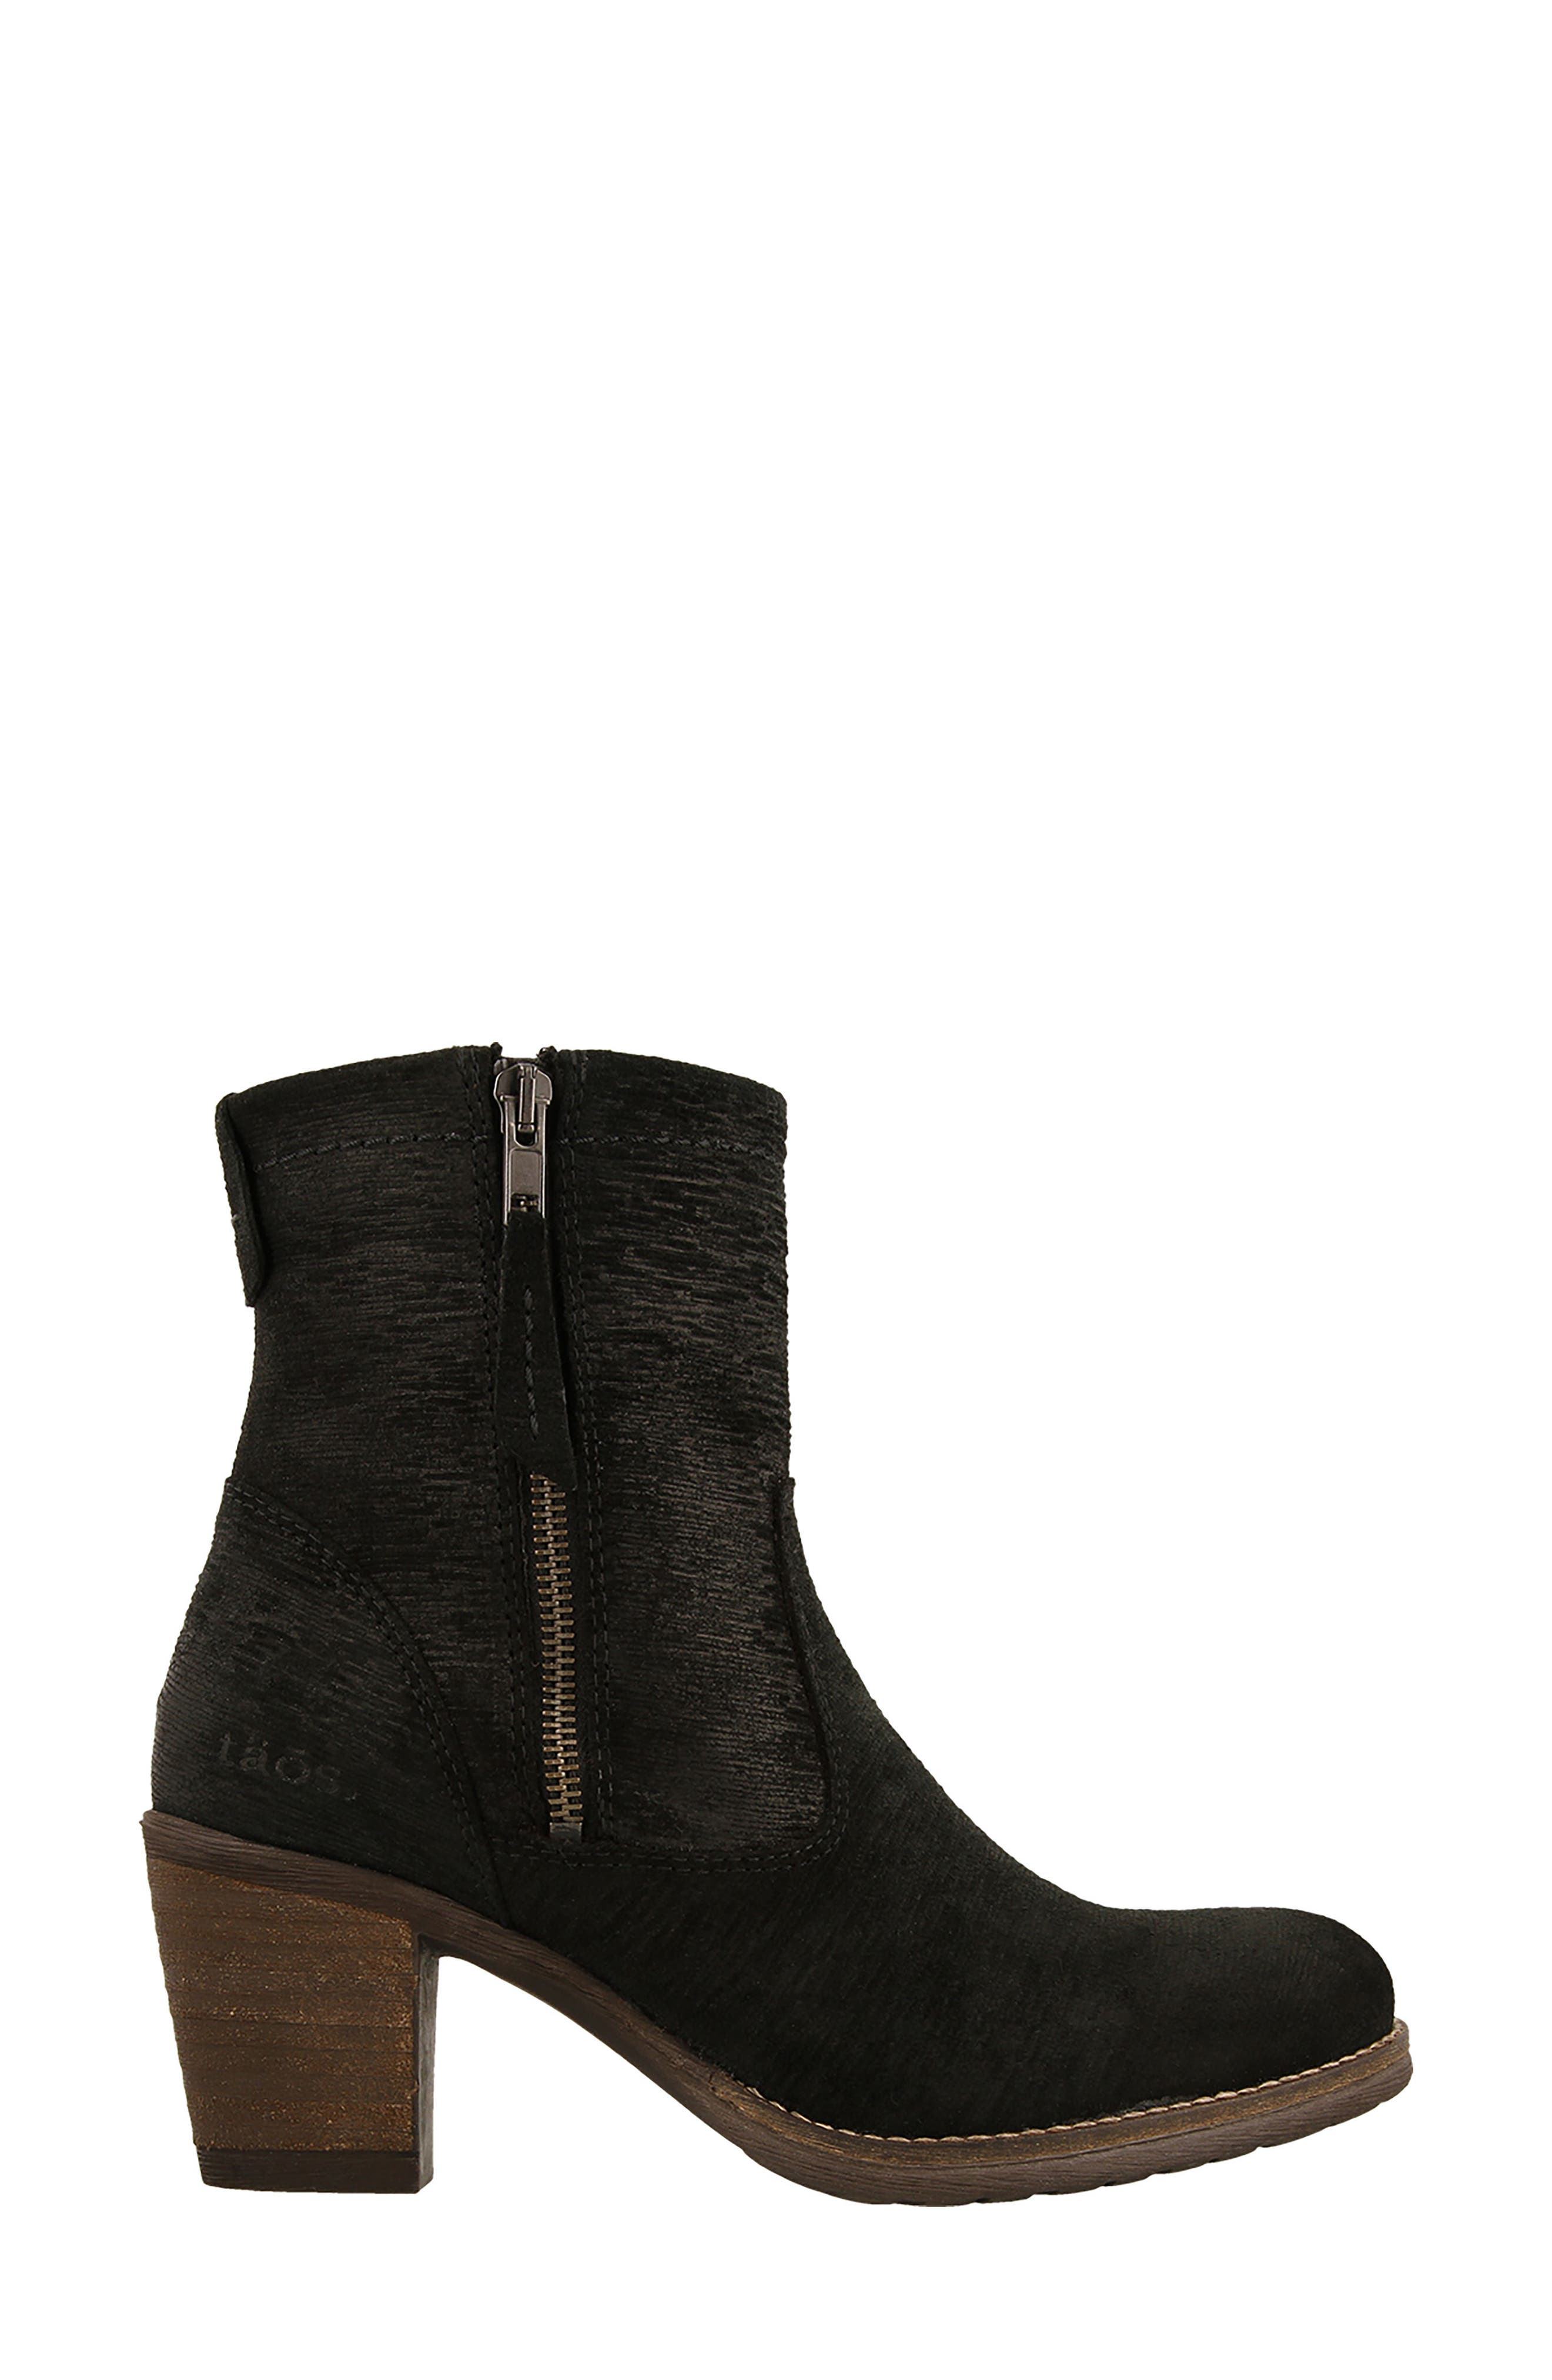 Shaka 2 Embossed Faux Fur Lined Bootie,                             Alternate thumbnail 3, color,                             Black Emboss Suede